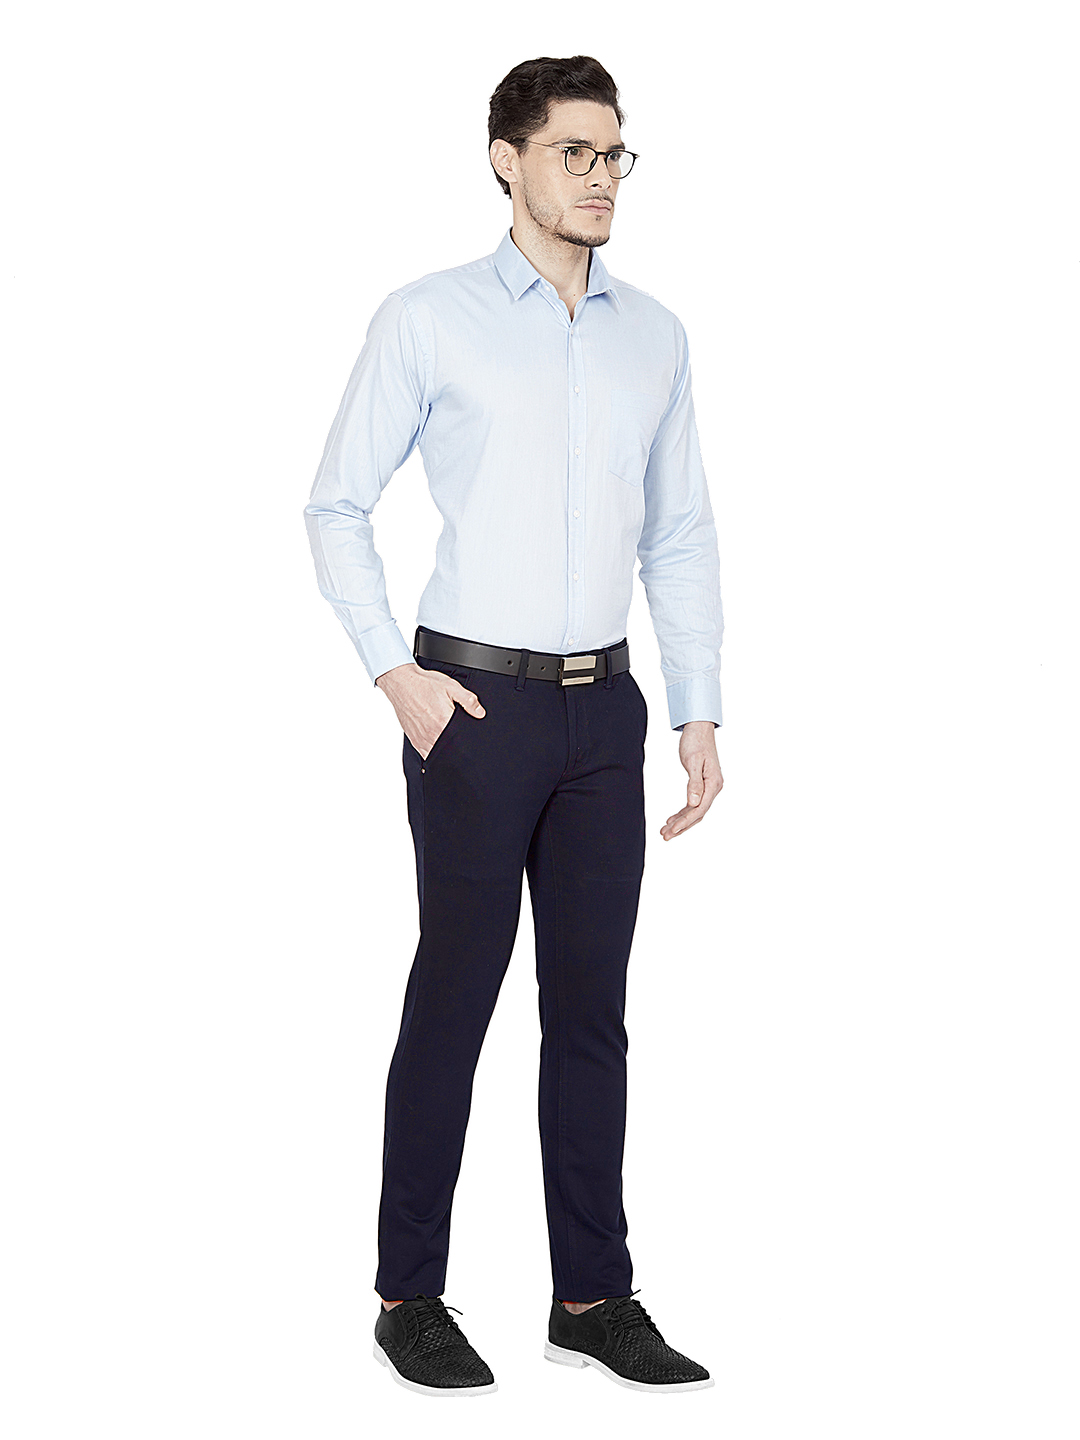 OXEMBERG   Oxemberg Men's Solid Cotton Formal Shirt